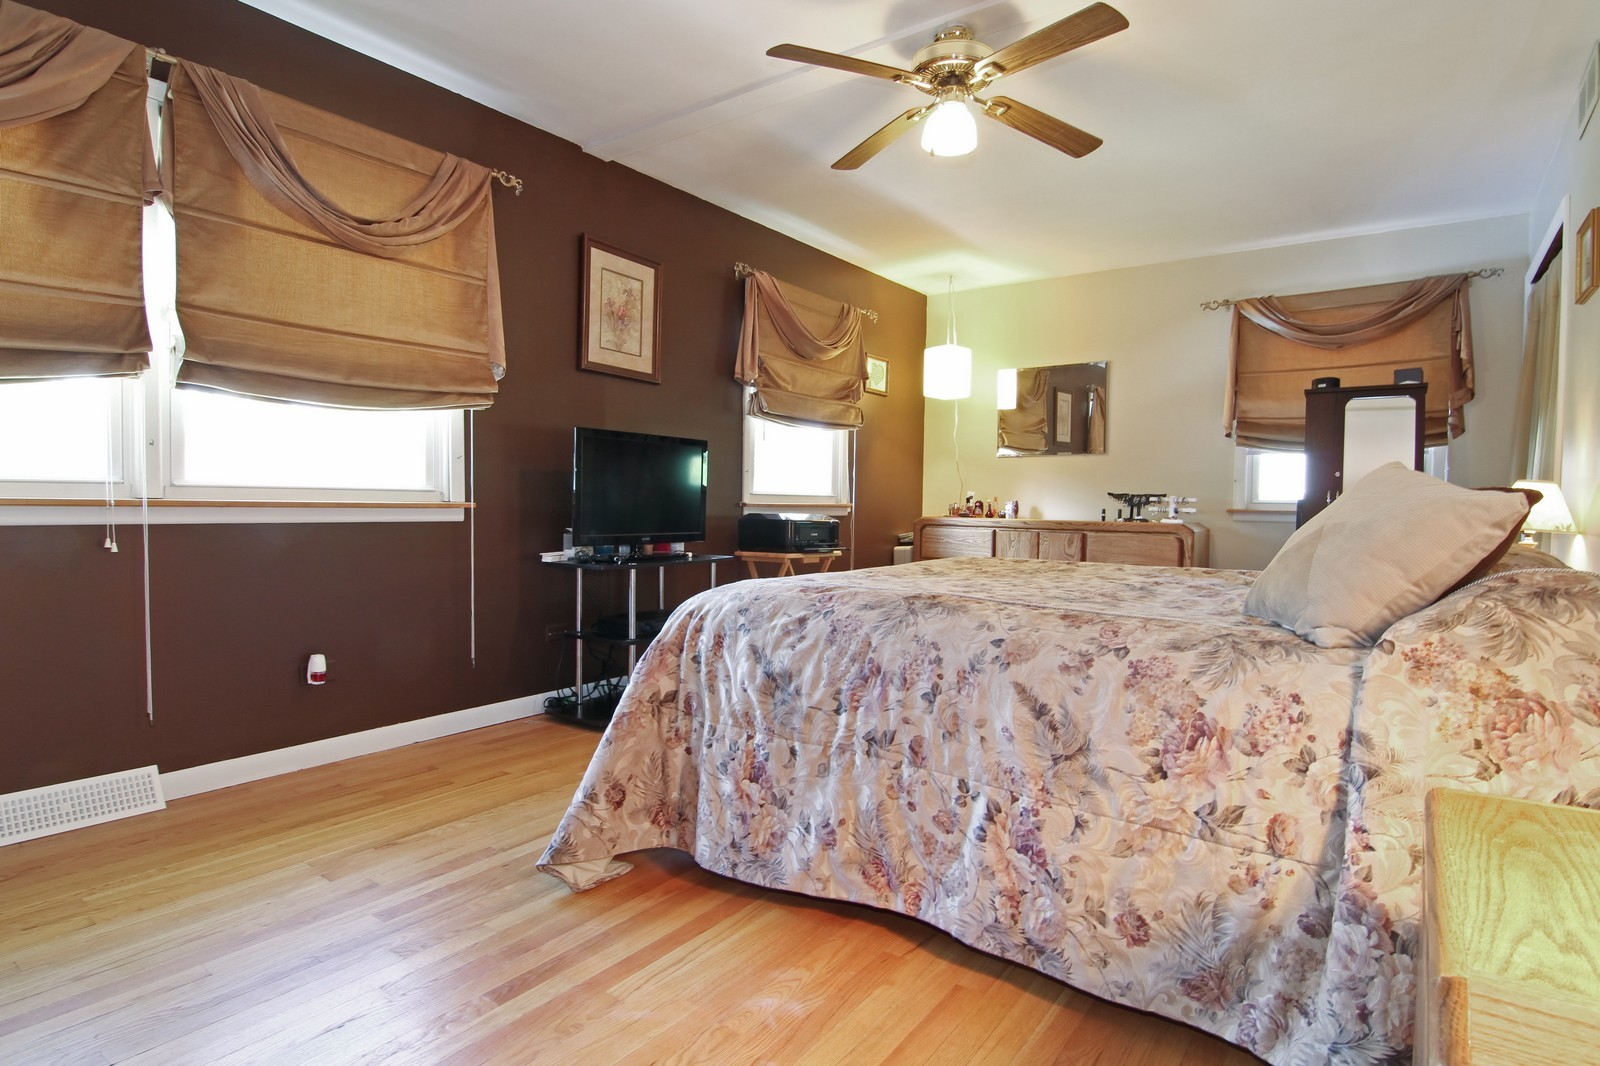 Real Estate Photography - 632 S. Lalonde Ave, Lombard, IL, 60148 - Master Bedroom